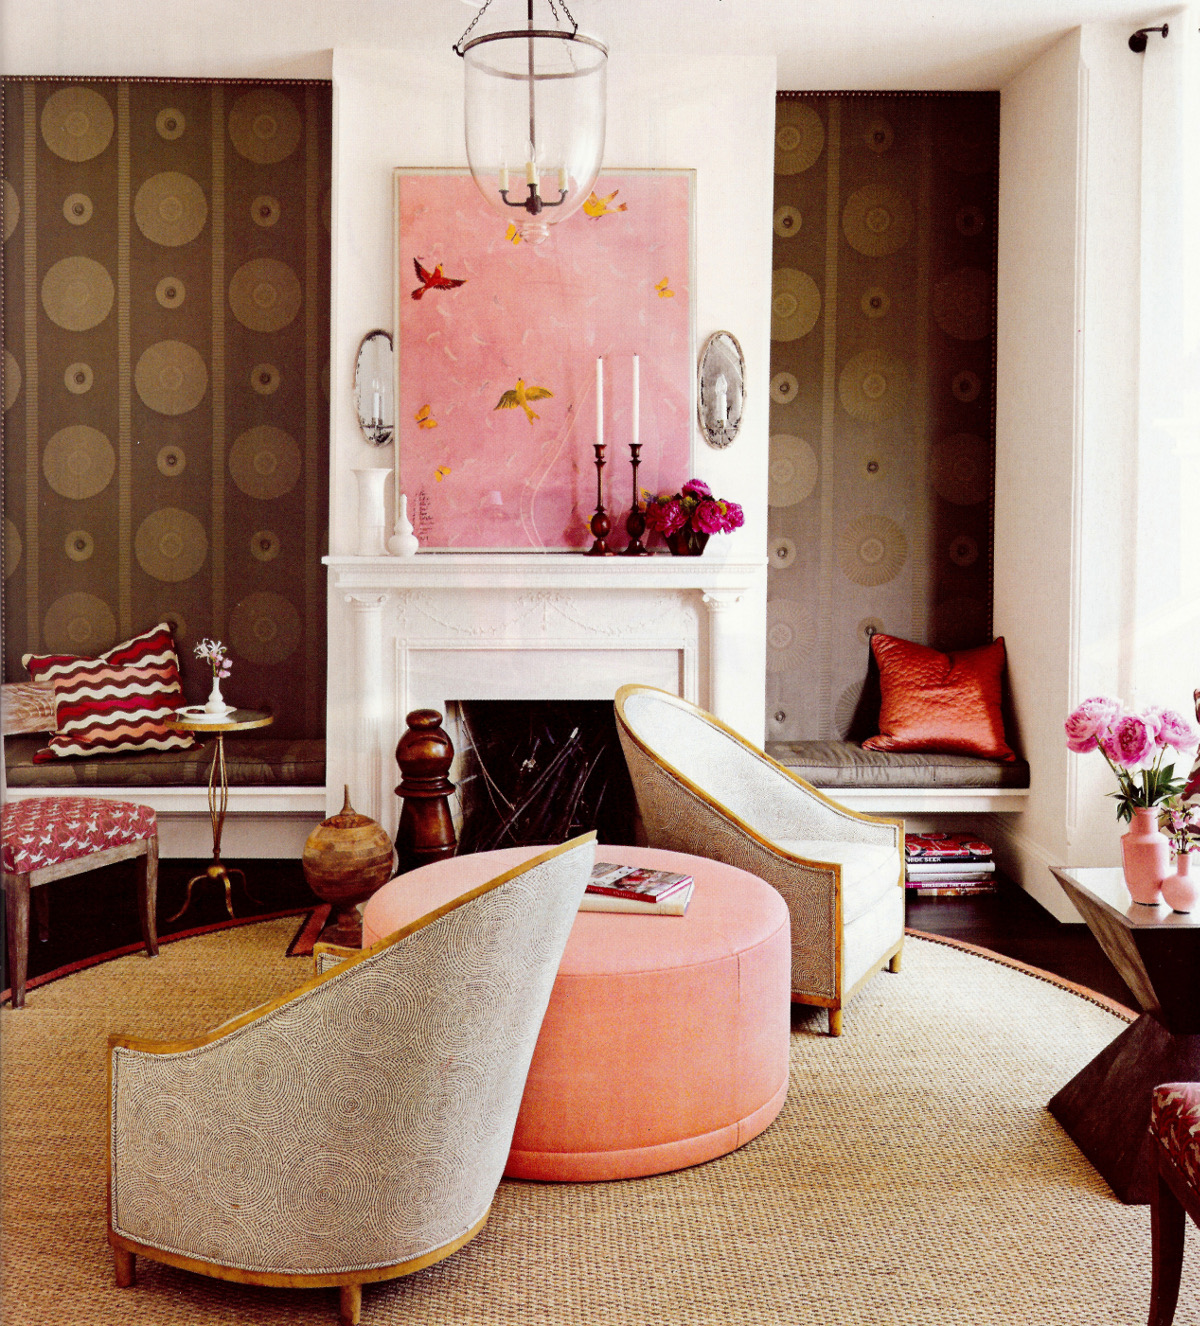 peony pink - living room by Barry Dixon combining peony pink with brown - House Beautiful via Atticmag